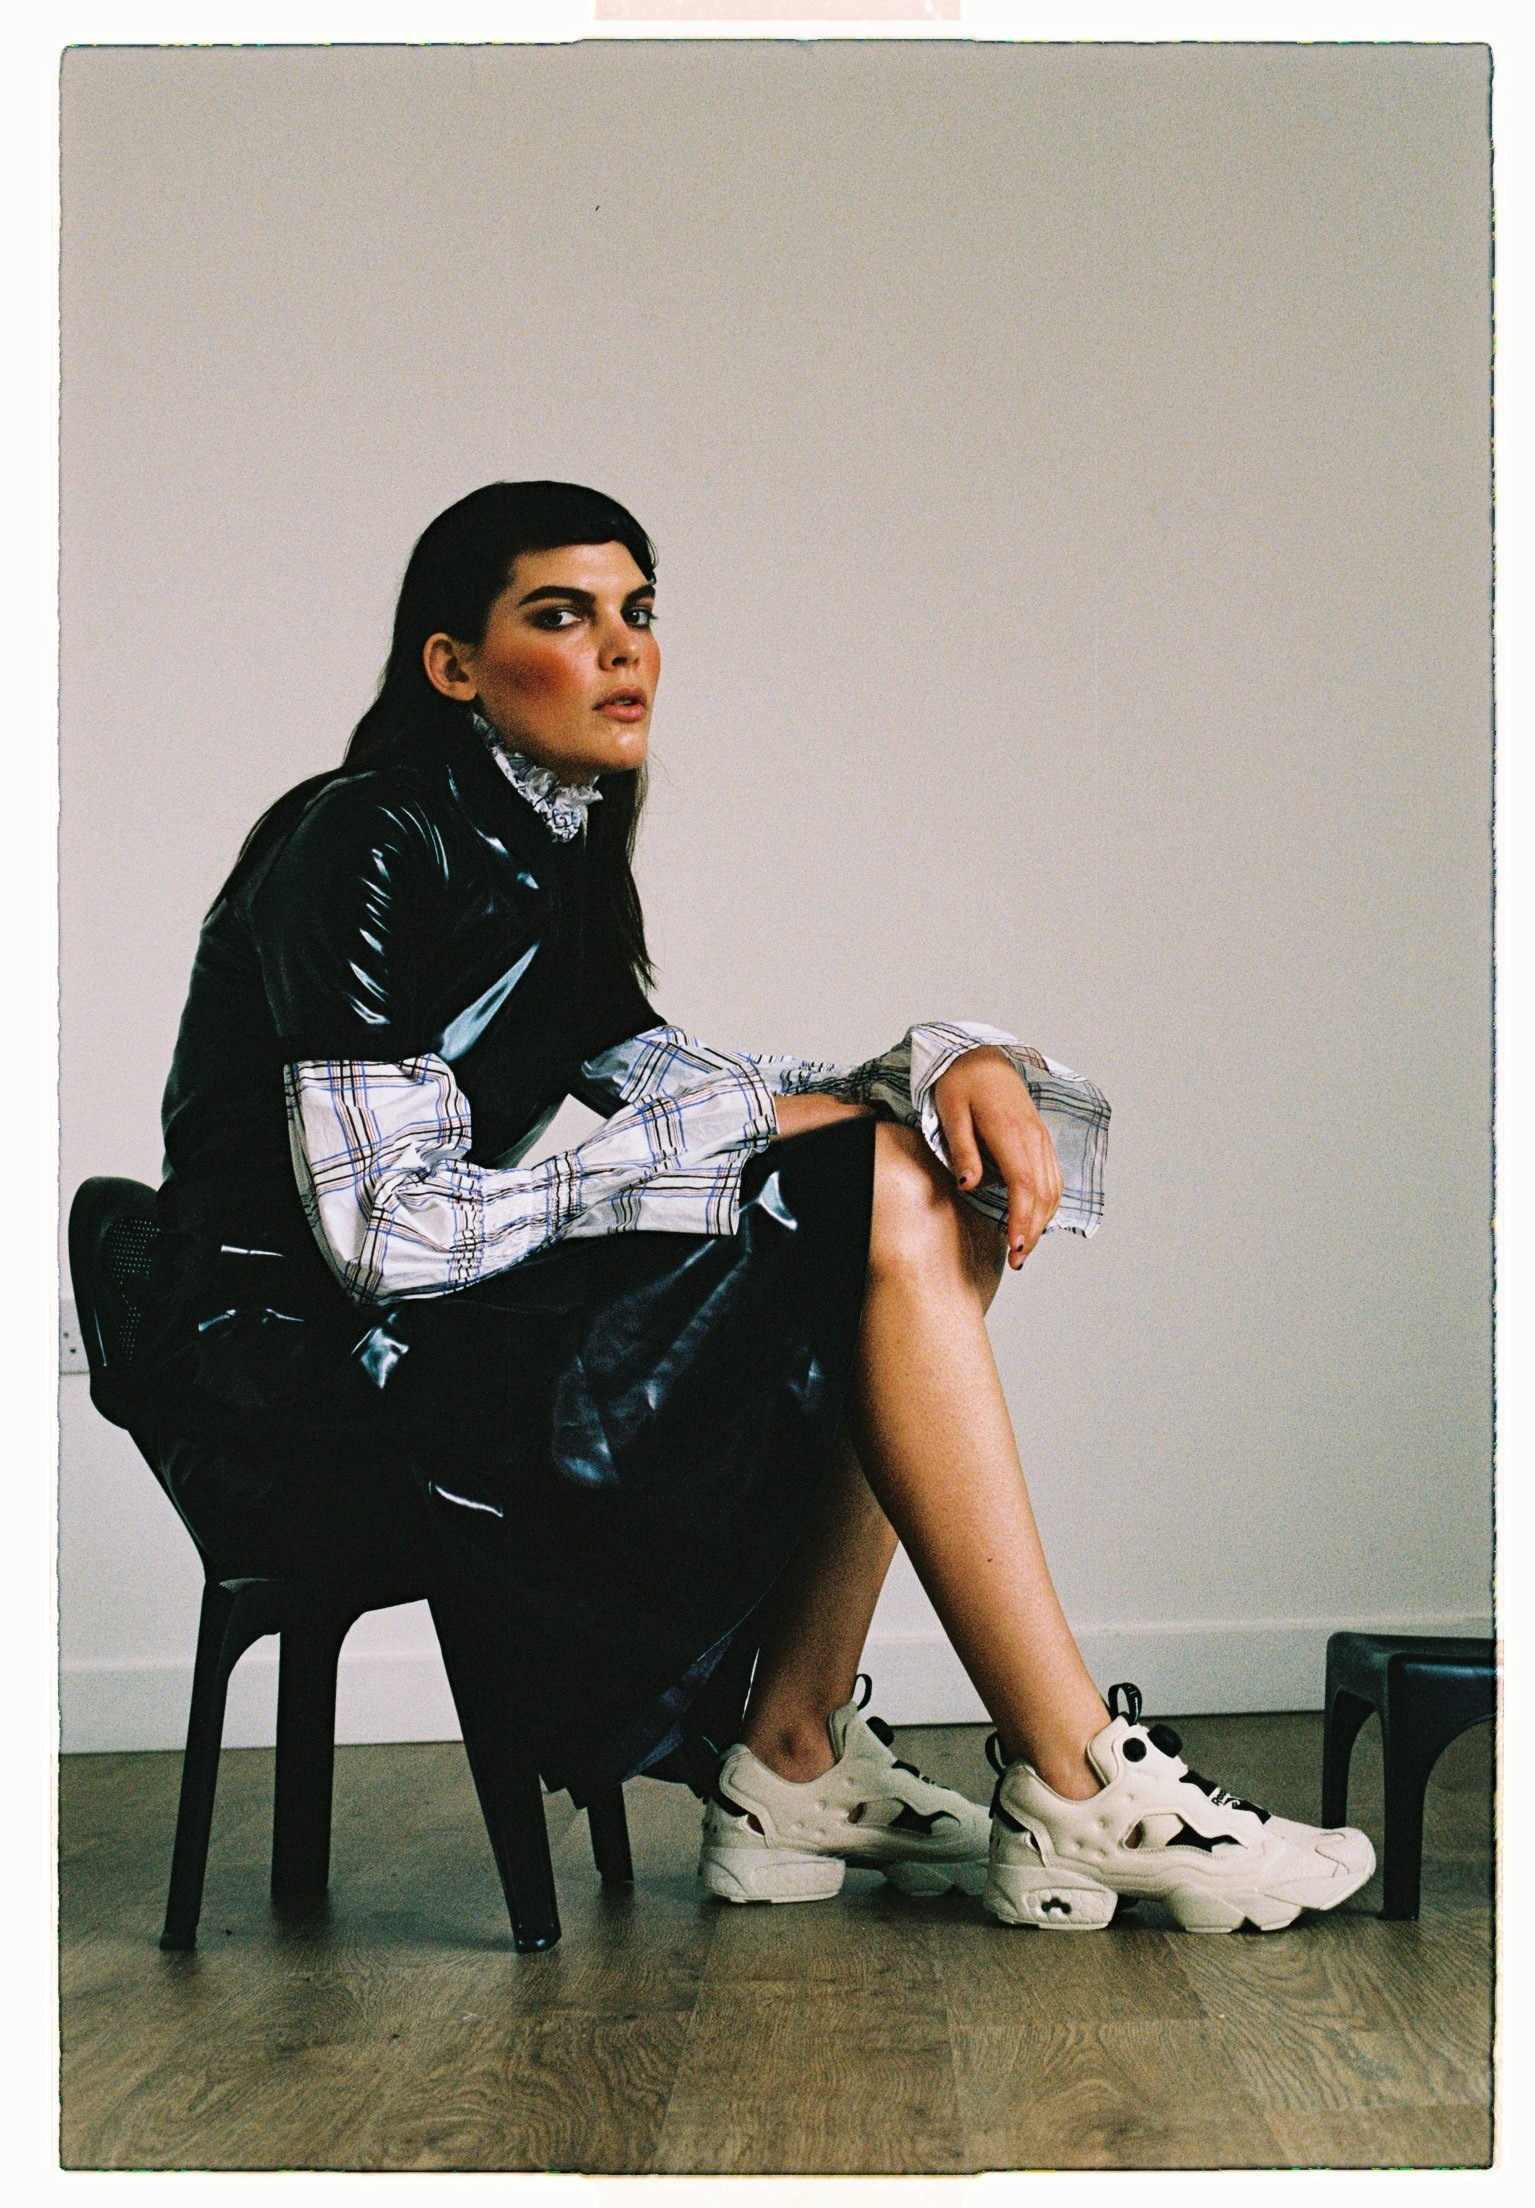 ISSUE NO 31: LUCIE VON ALTEN // PHOTOGRAPHY BY RONAN MCKENZIE